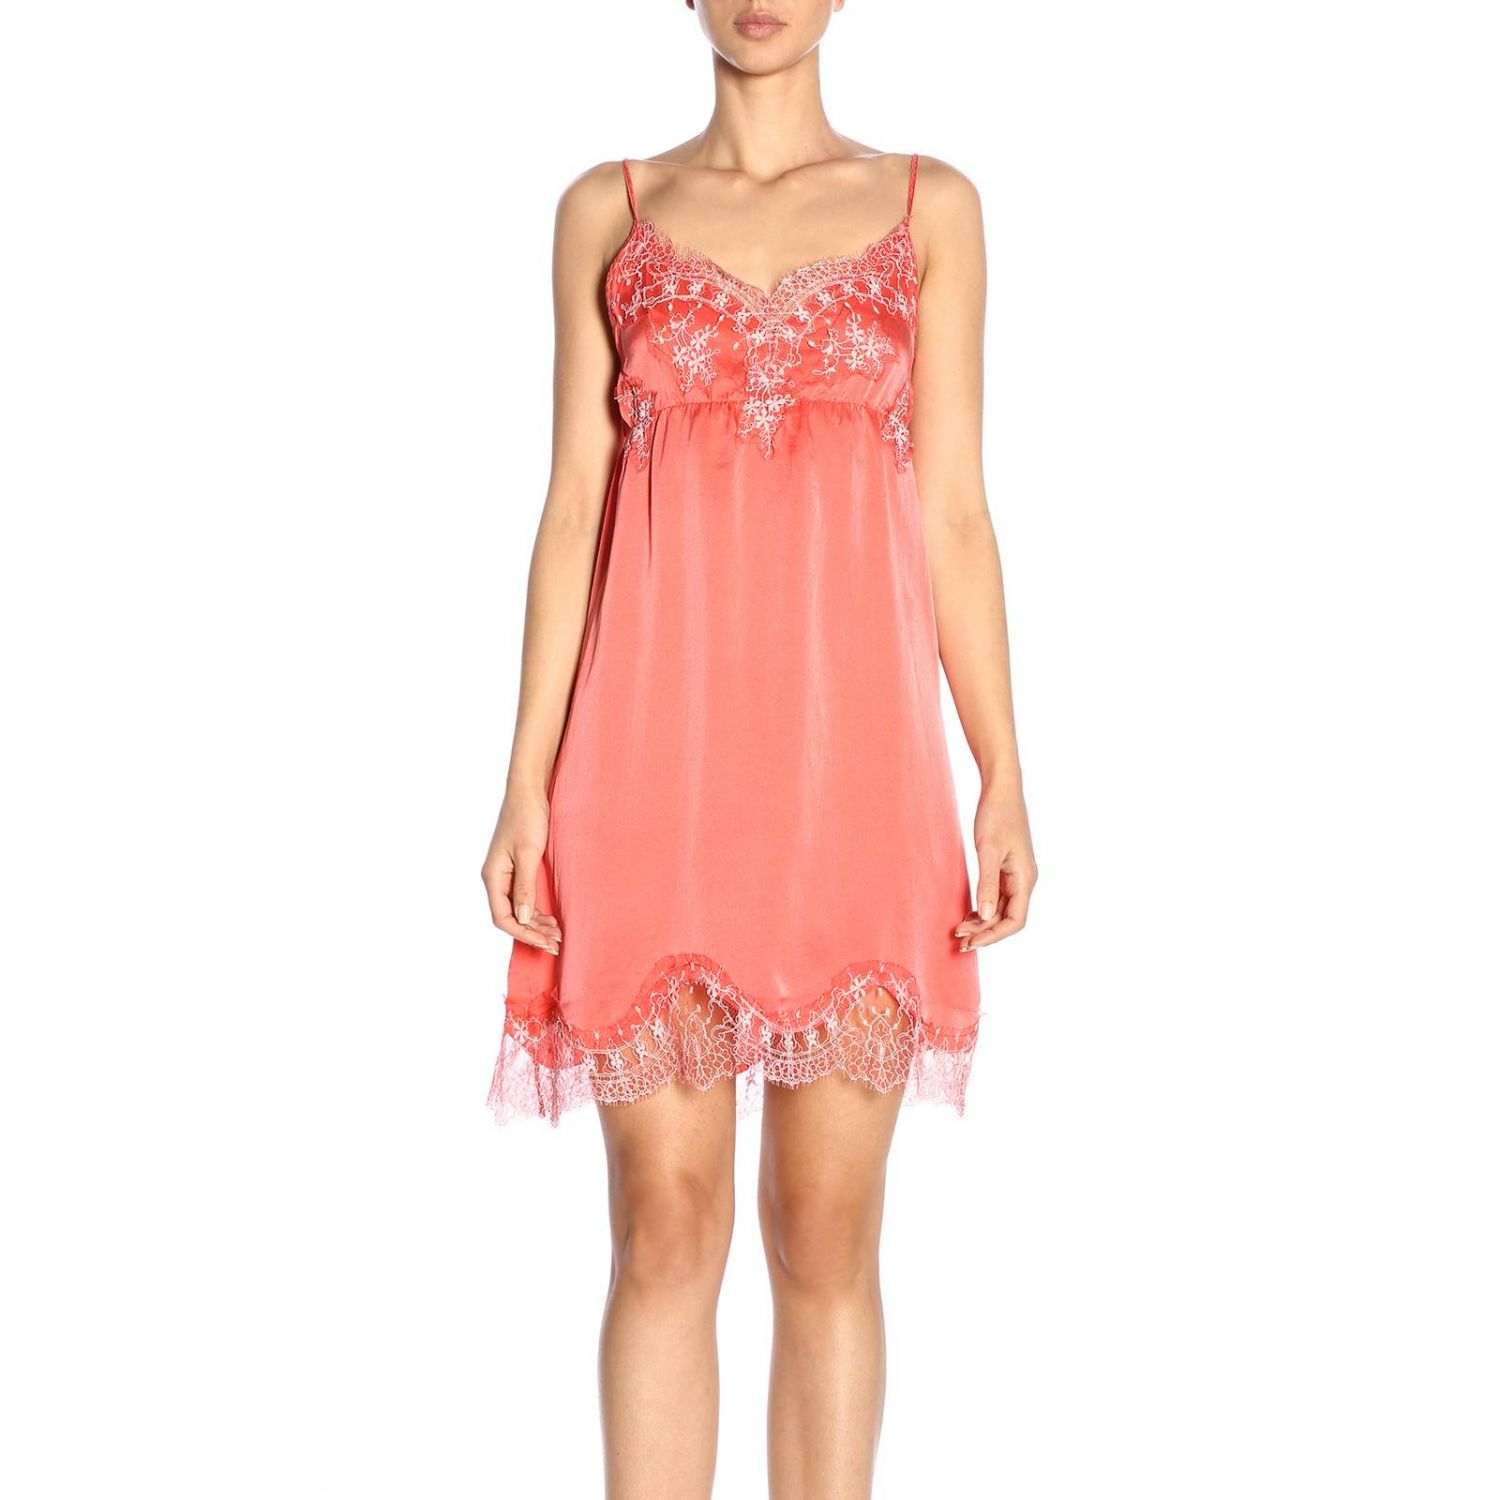 Intimo donna Pink Memories fuxia 1